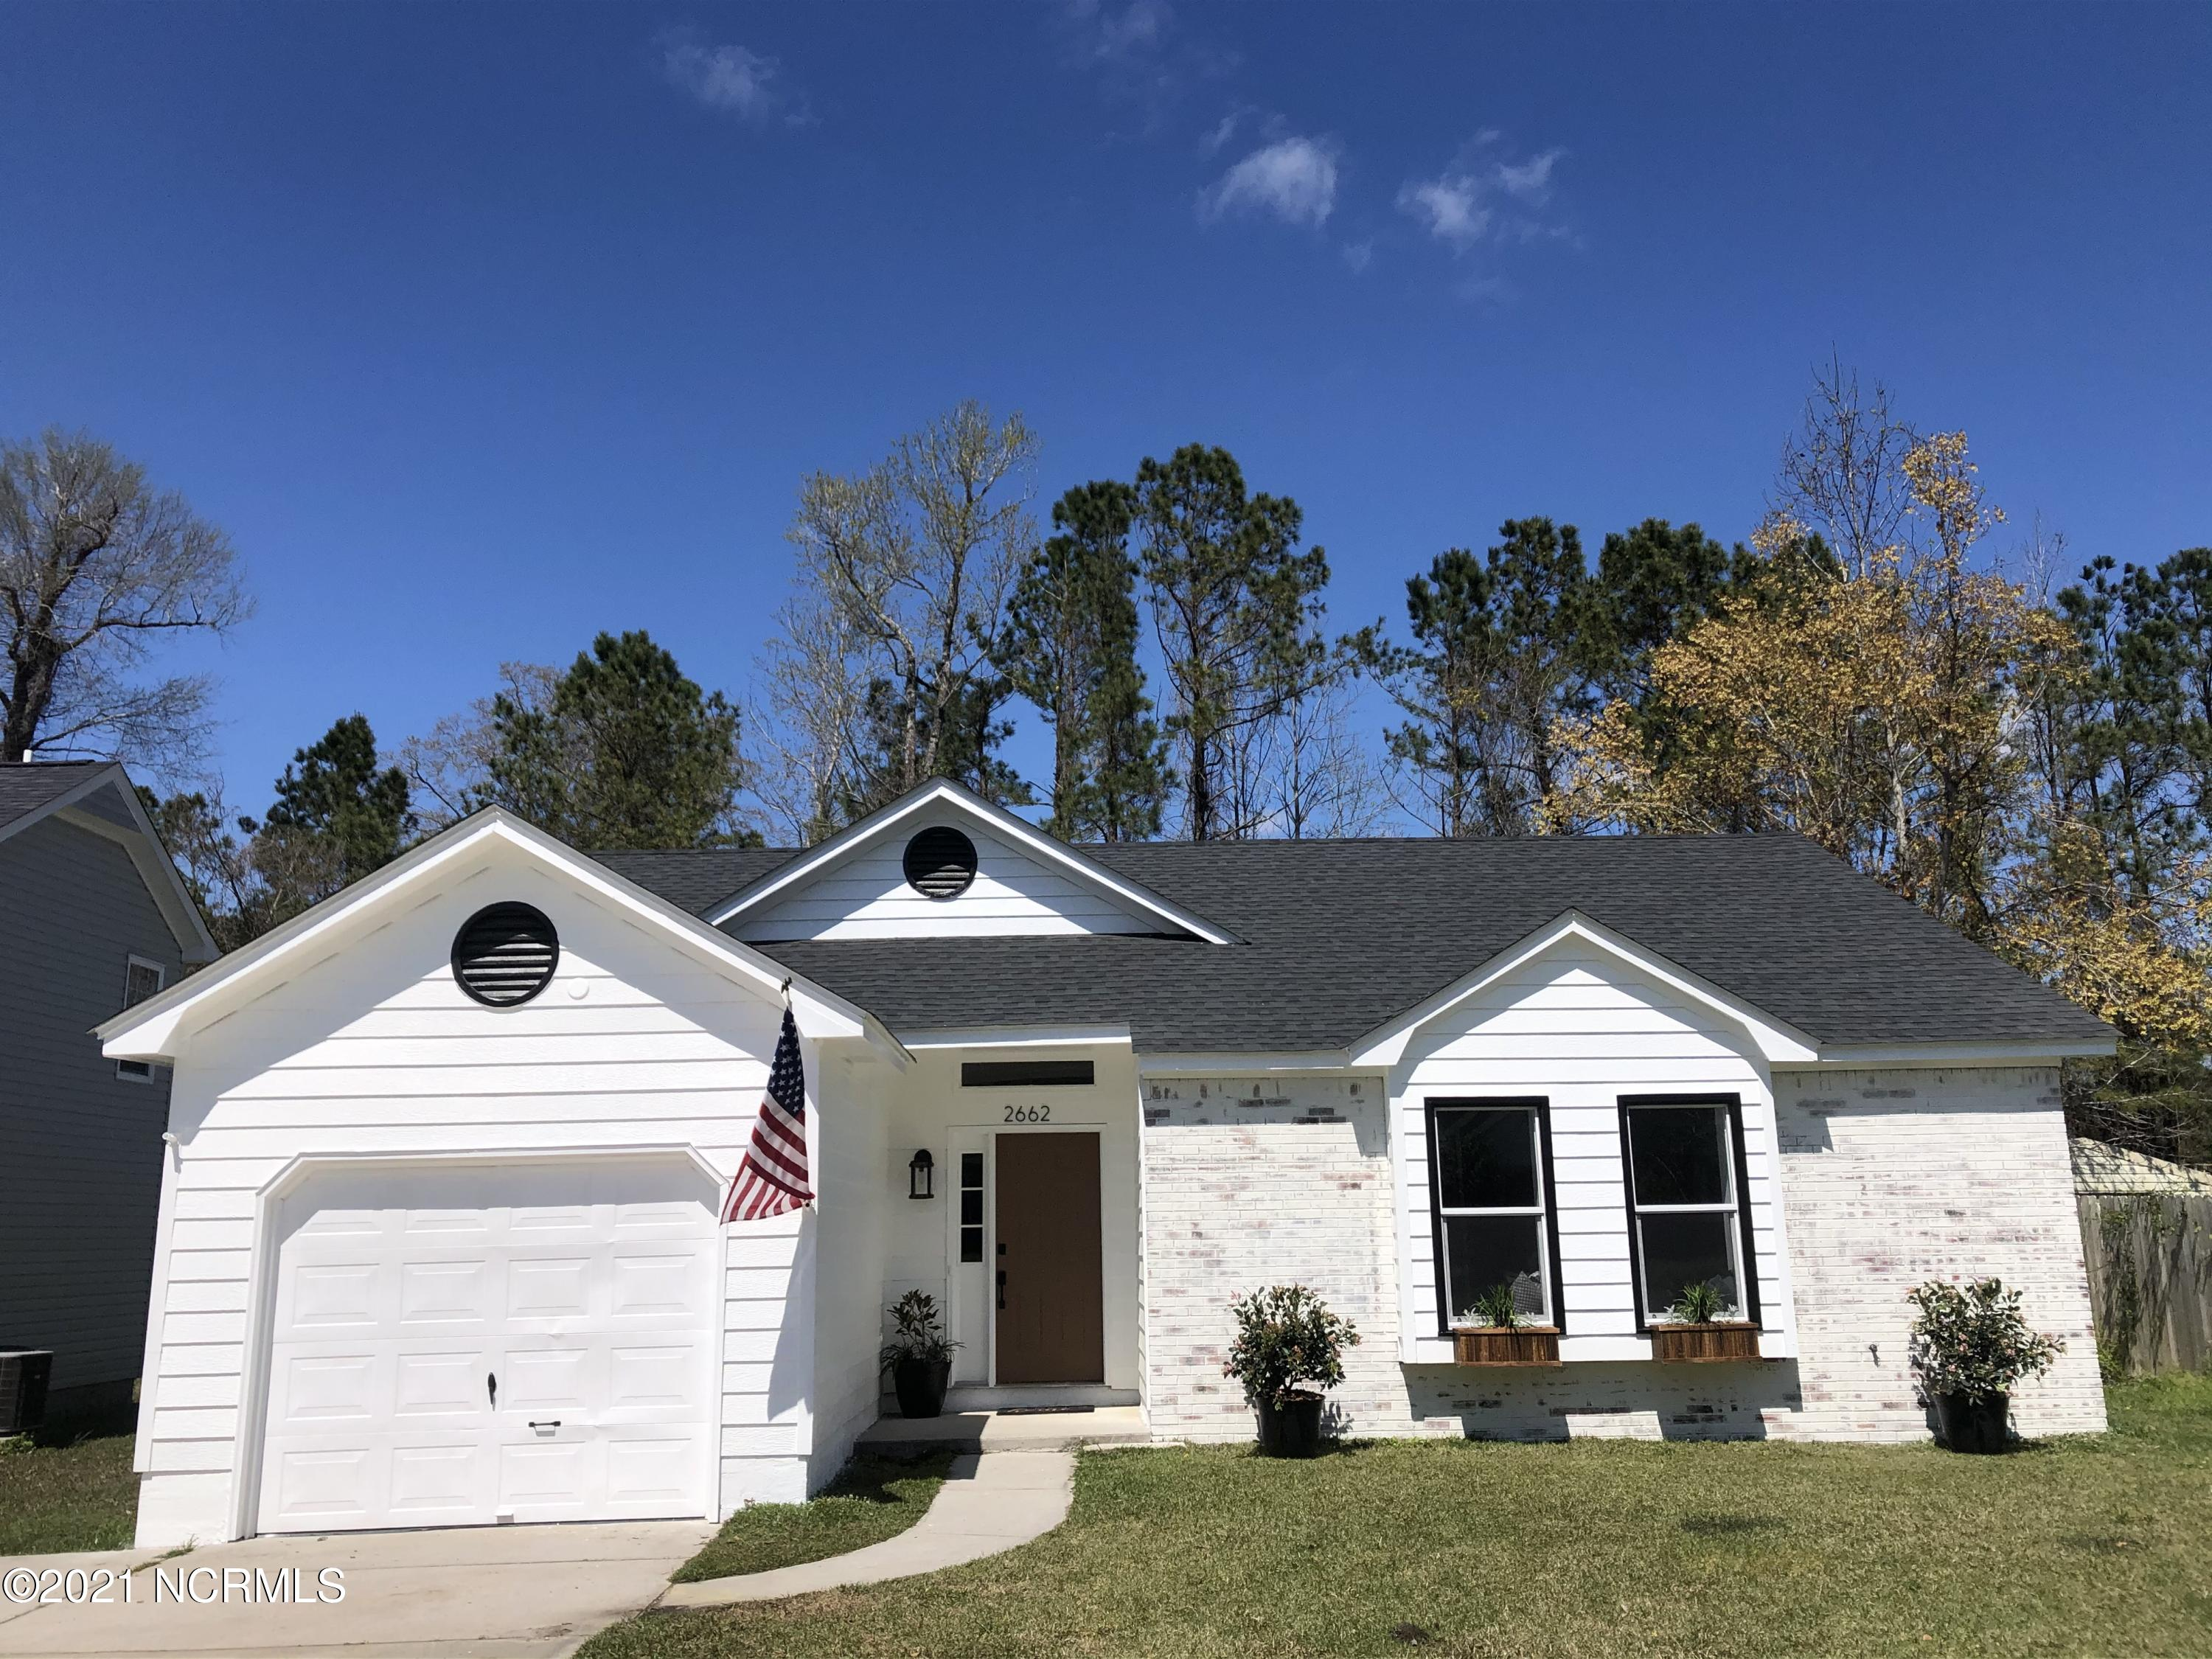 Welcome Home! Picture Perfect! Beautifully and completely remodeled.New Roof, HVAC, Paint inside and out, Flooring, Appliances, countertops too much to list!! Must see to appreciate this adorable home in Hunters Creek!Minutes from Camp Lejeune, Shopping, Restaurants and Hospital.